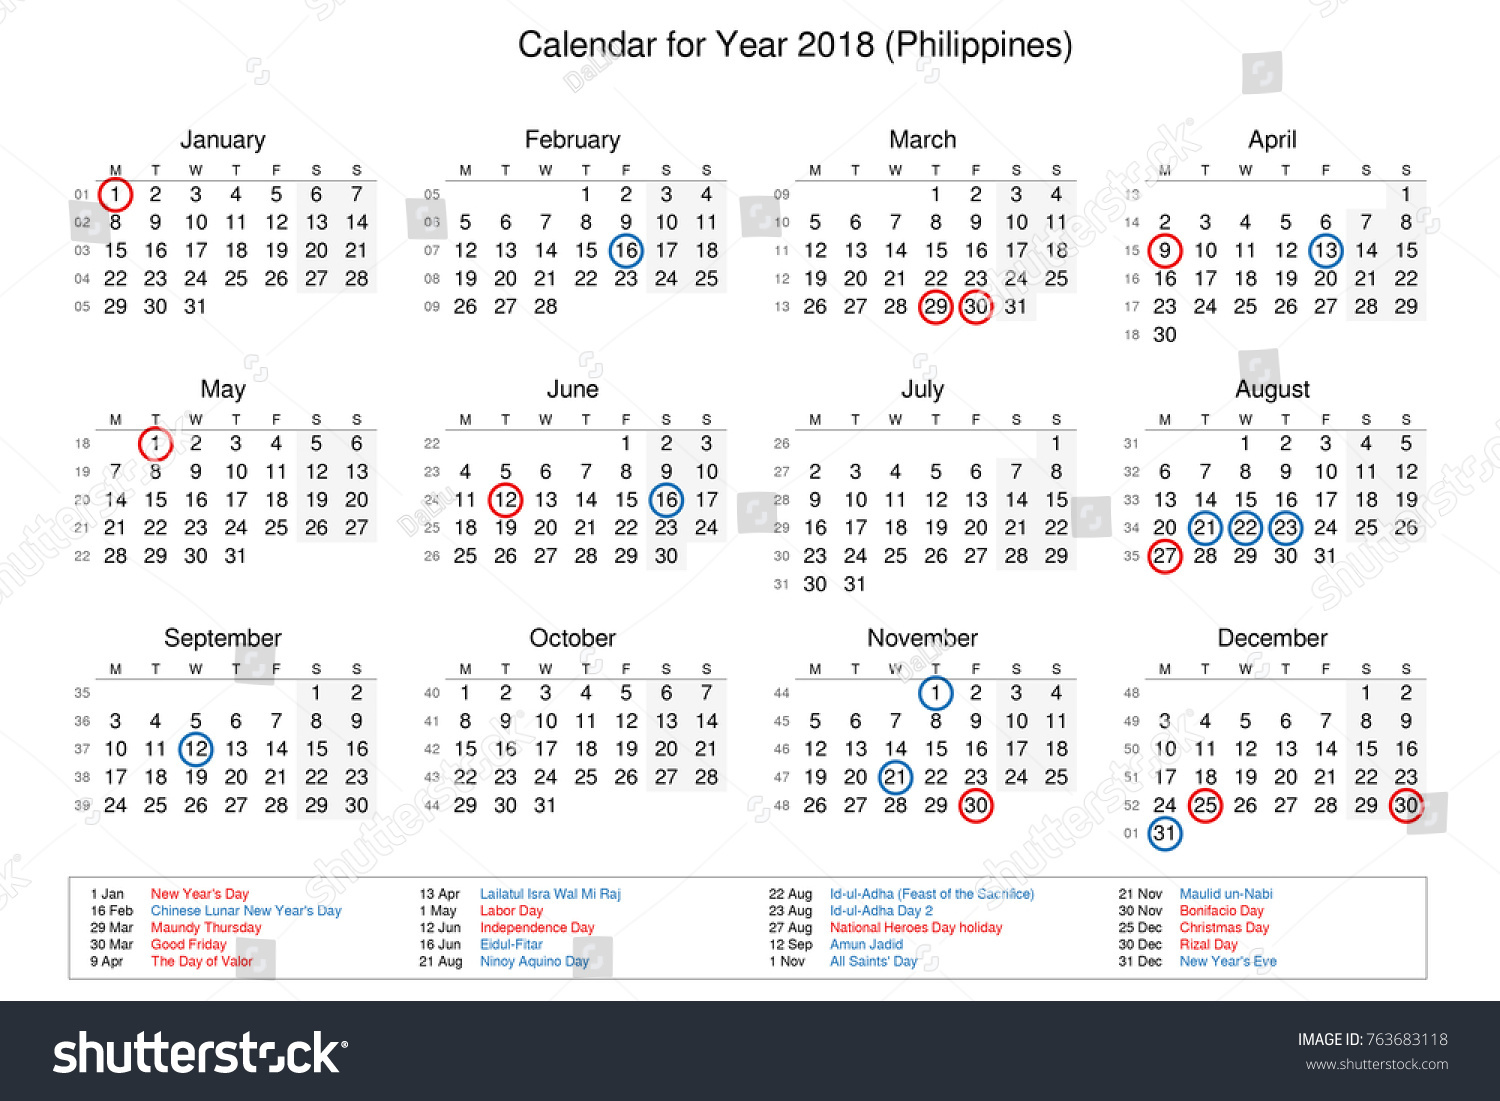 calendar of year 2018 with public holidays and bank holidays for philippines